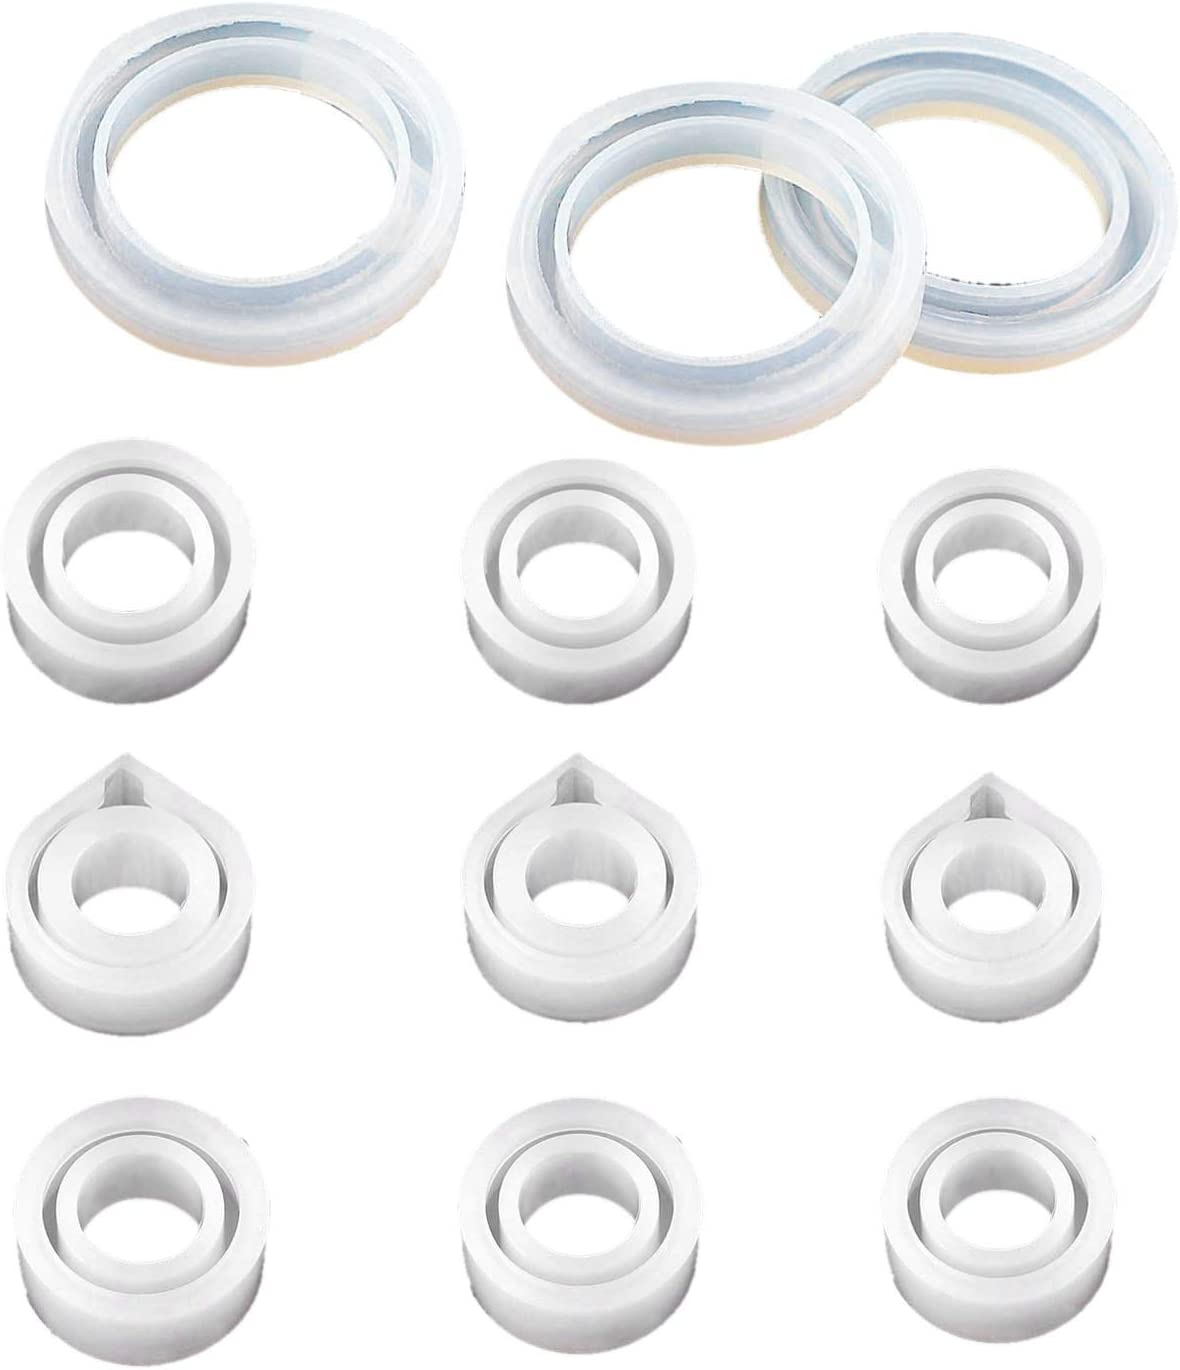 Timagebreze Jewelry Casting Molds 12 Pieces Silicone Ring Molds Silicone Resin Sphere Mold for Bracelet Rings Jewelry Pendant Making and Crafting